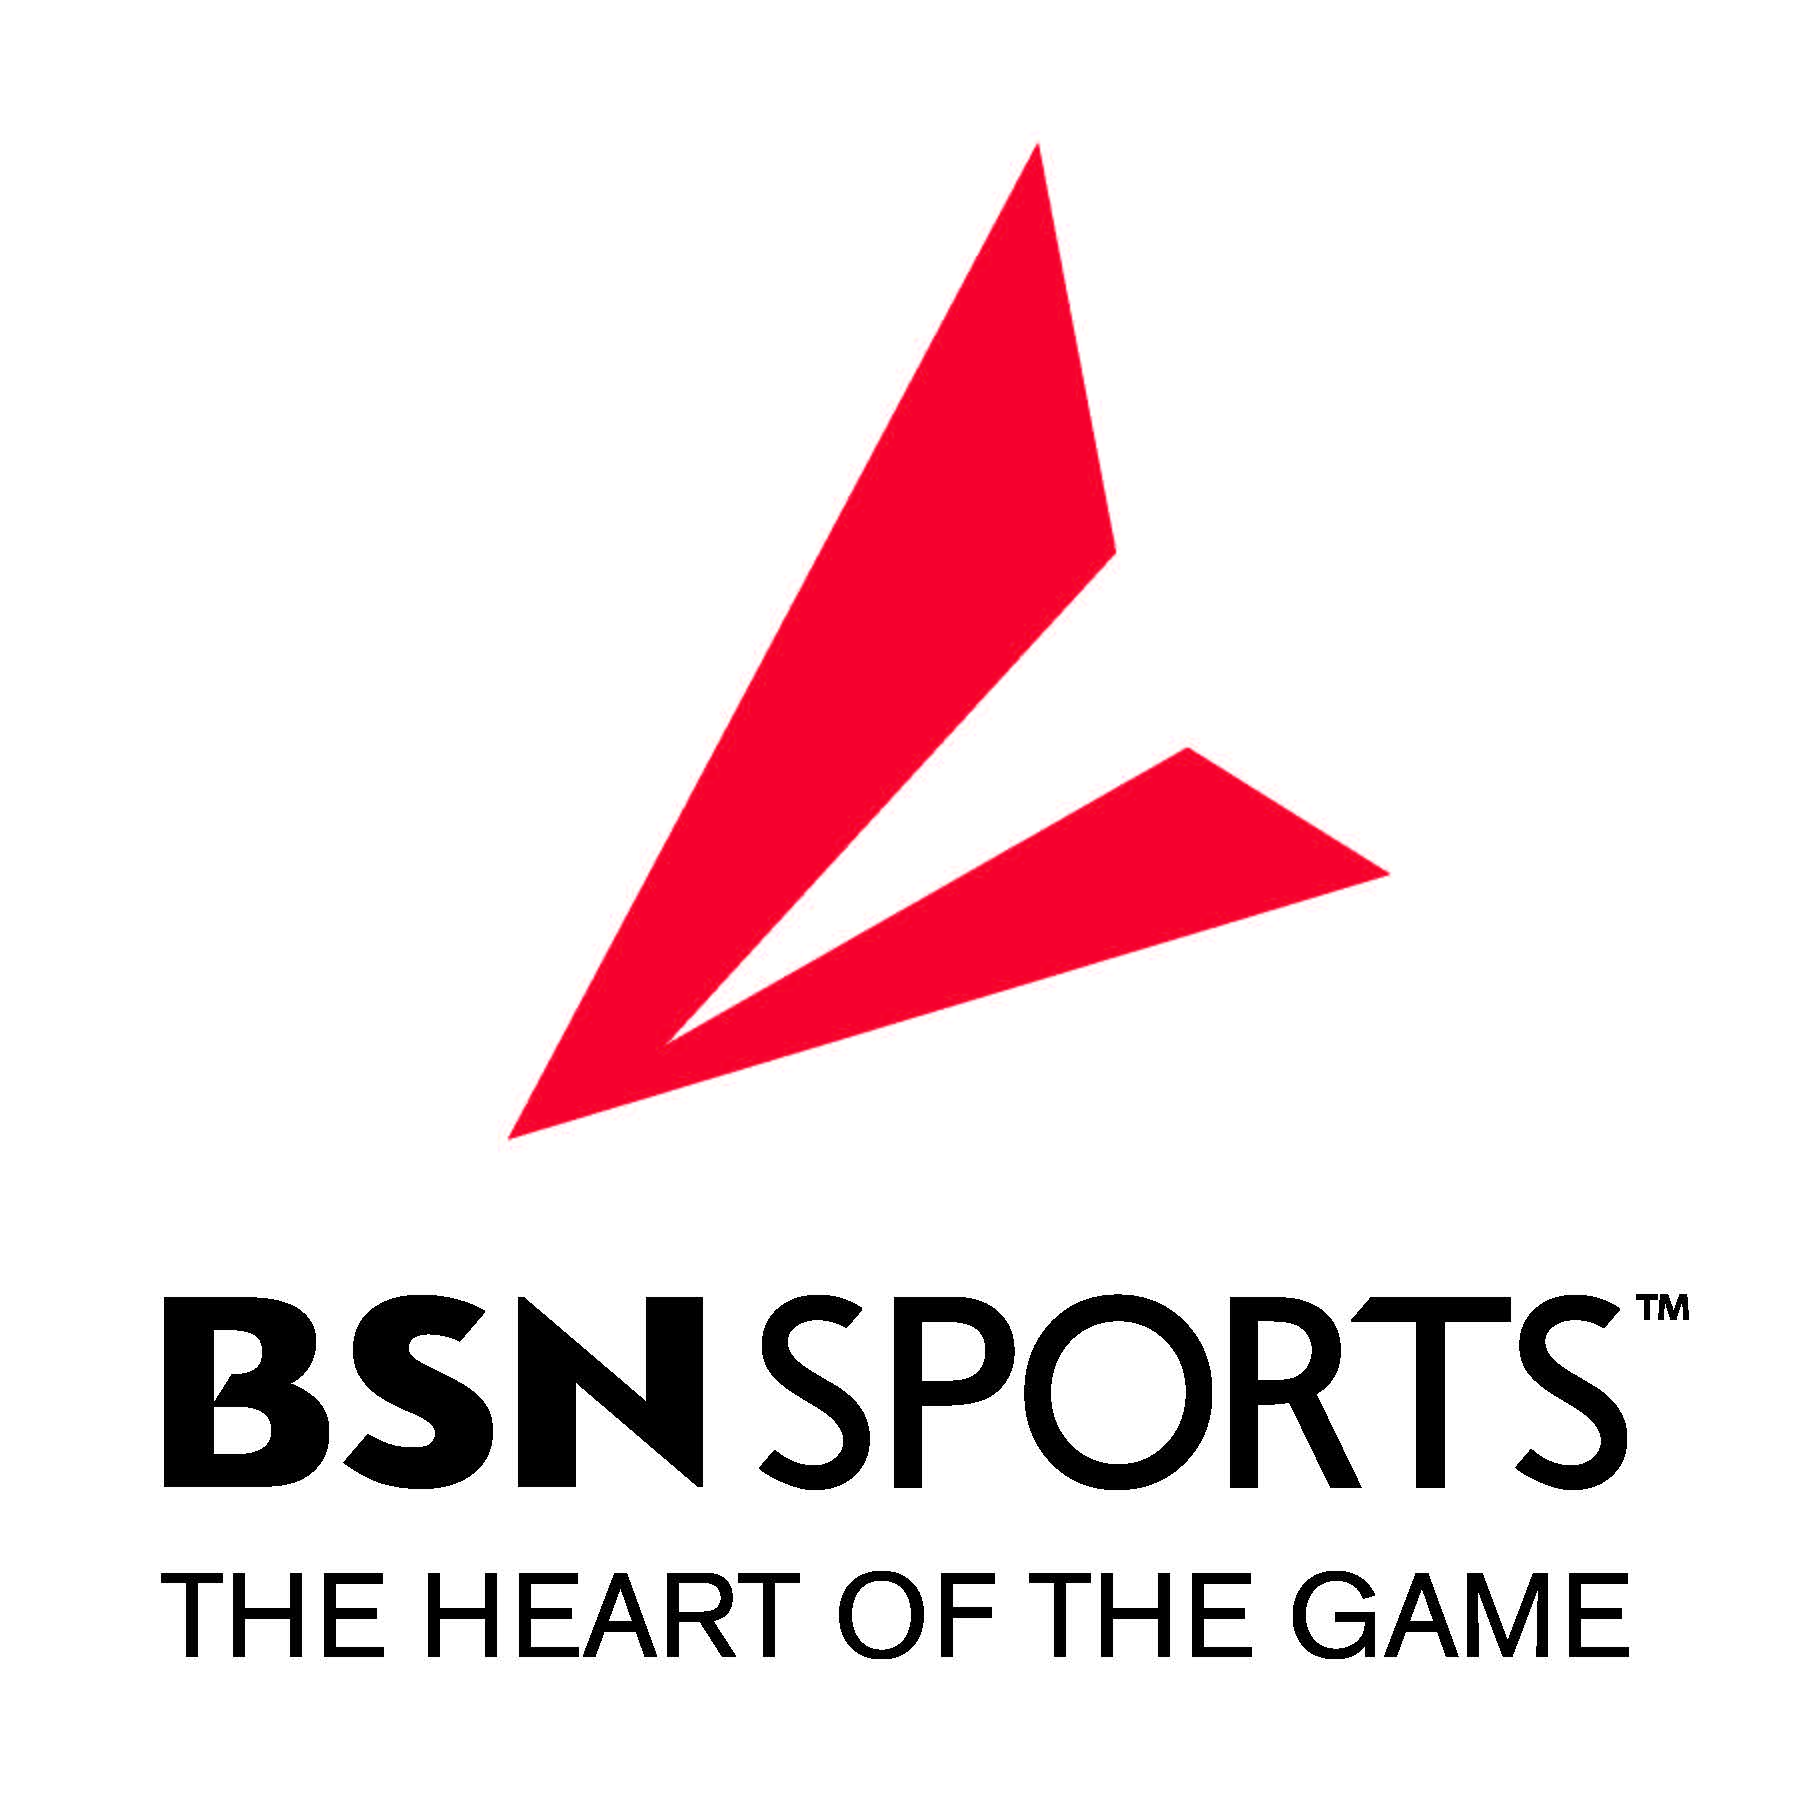 BSN_logo_Underneath_1color_Black_Vertical